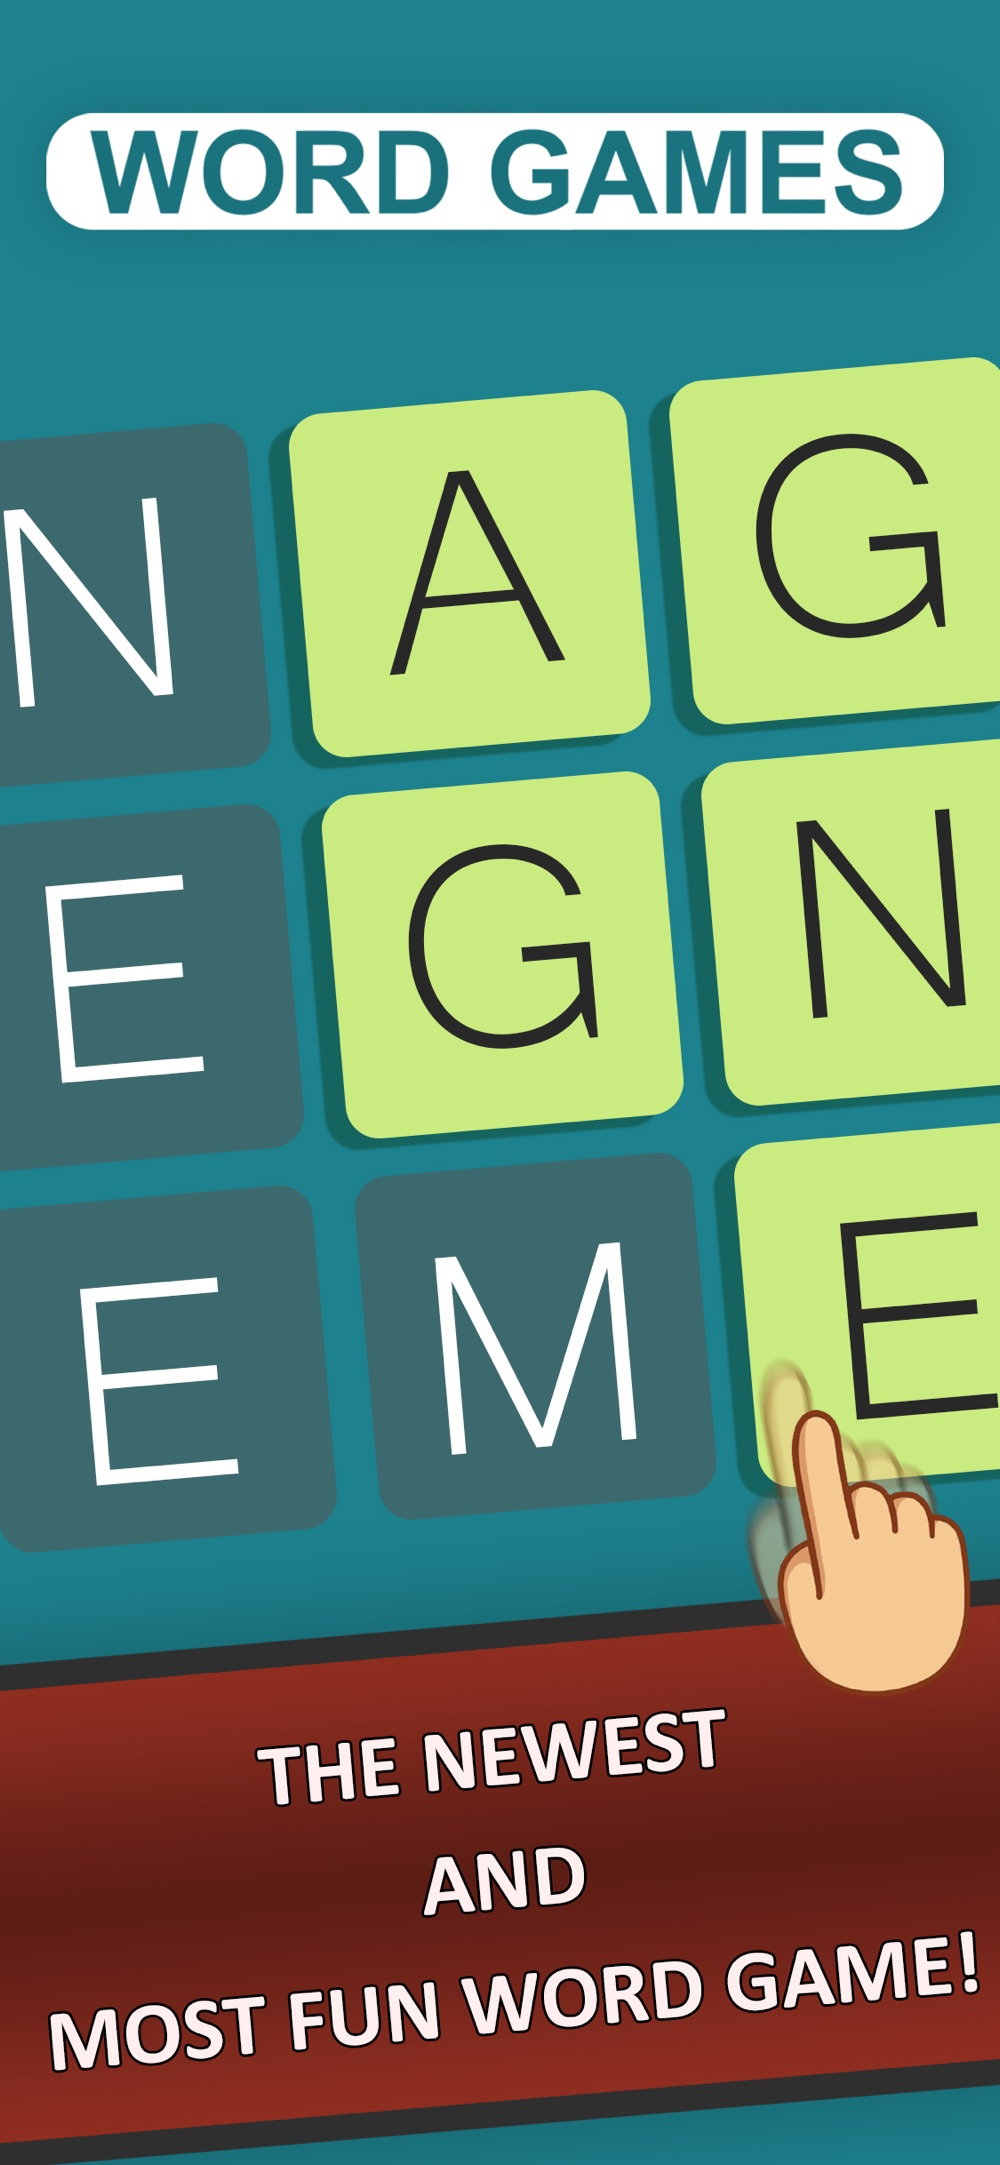 Word Games Master Cheat Codes